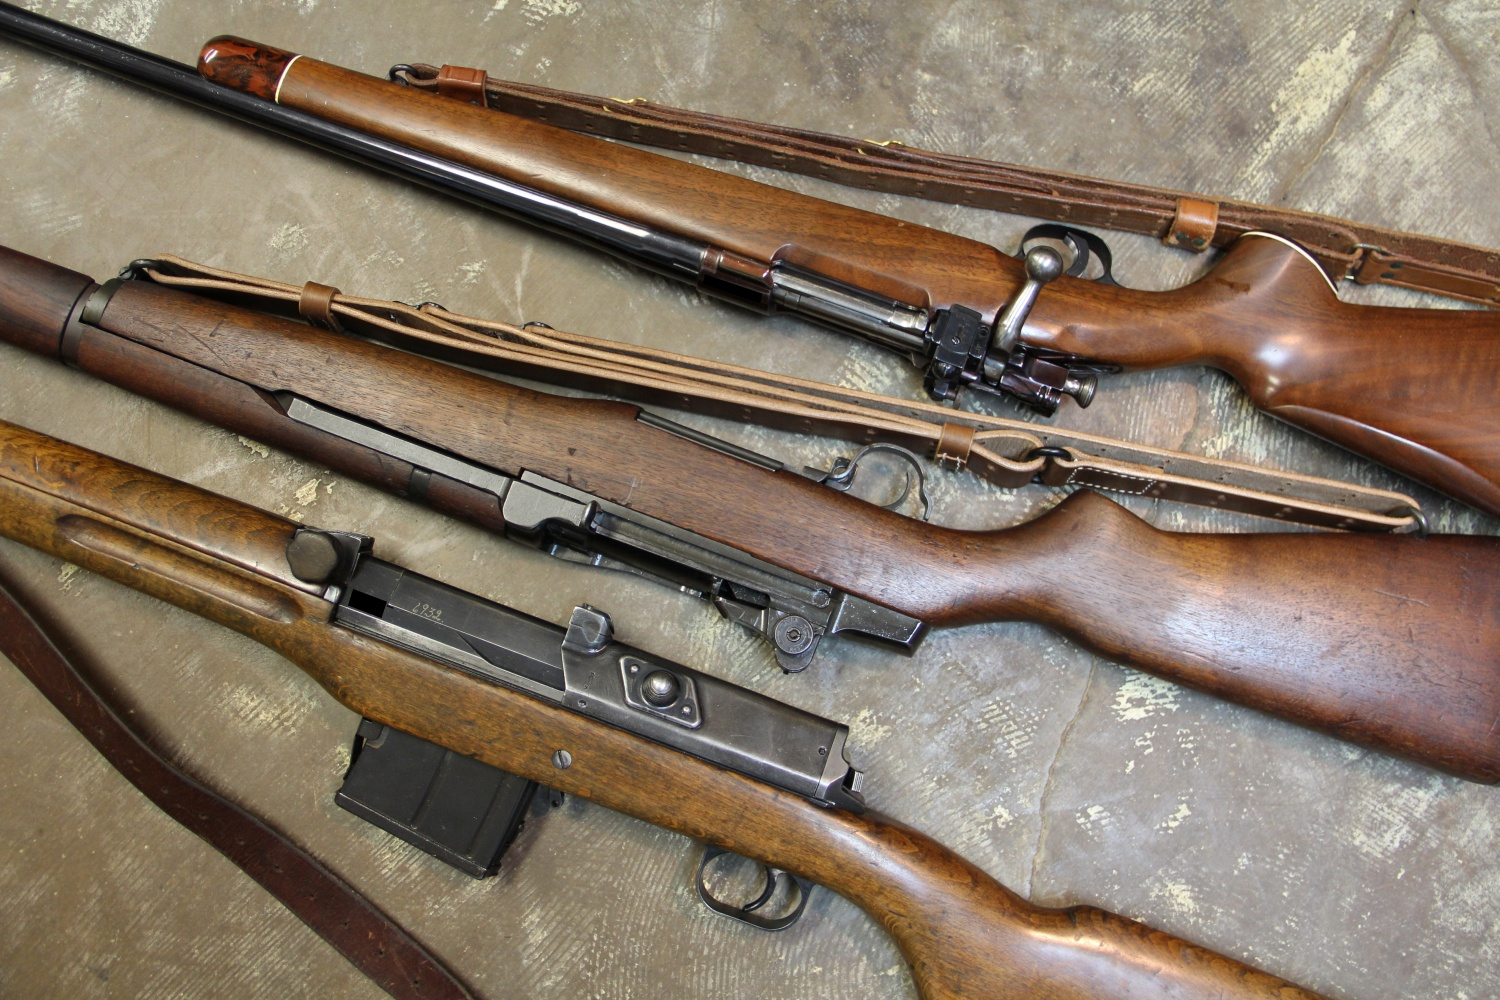 m1 garand rifle essay Springfield armory rifles m1 garand for sale and auction buy a springfield armory rifles m1 garand online sell your springfield armory rifles m1 garand f.